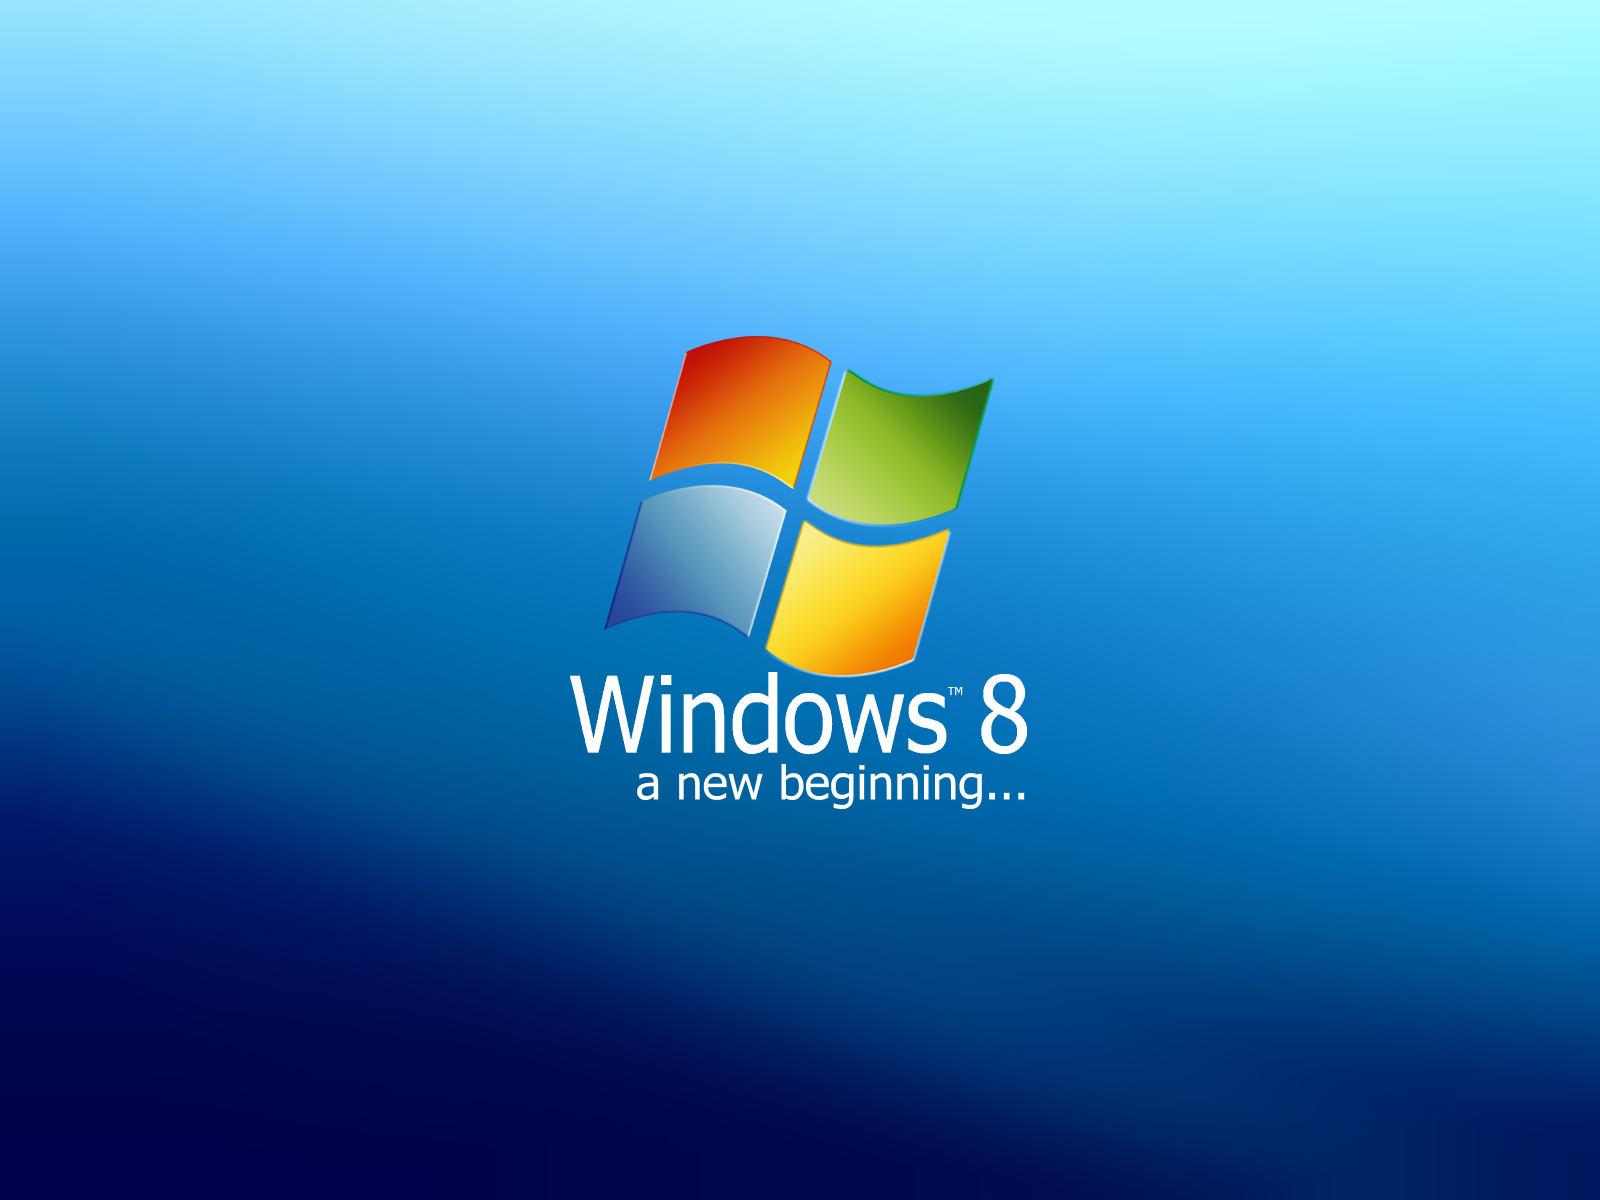 Windows 8 Wallpapers Release: Windows 8 Themes And Wallpapers